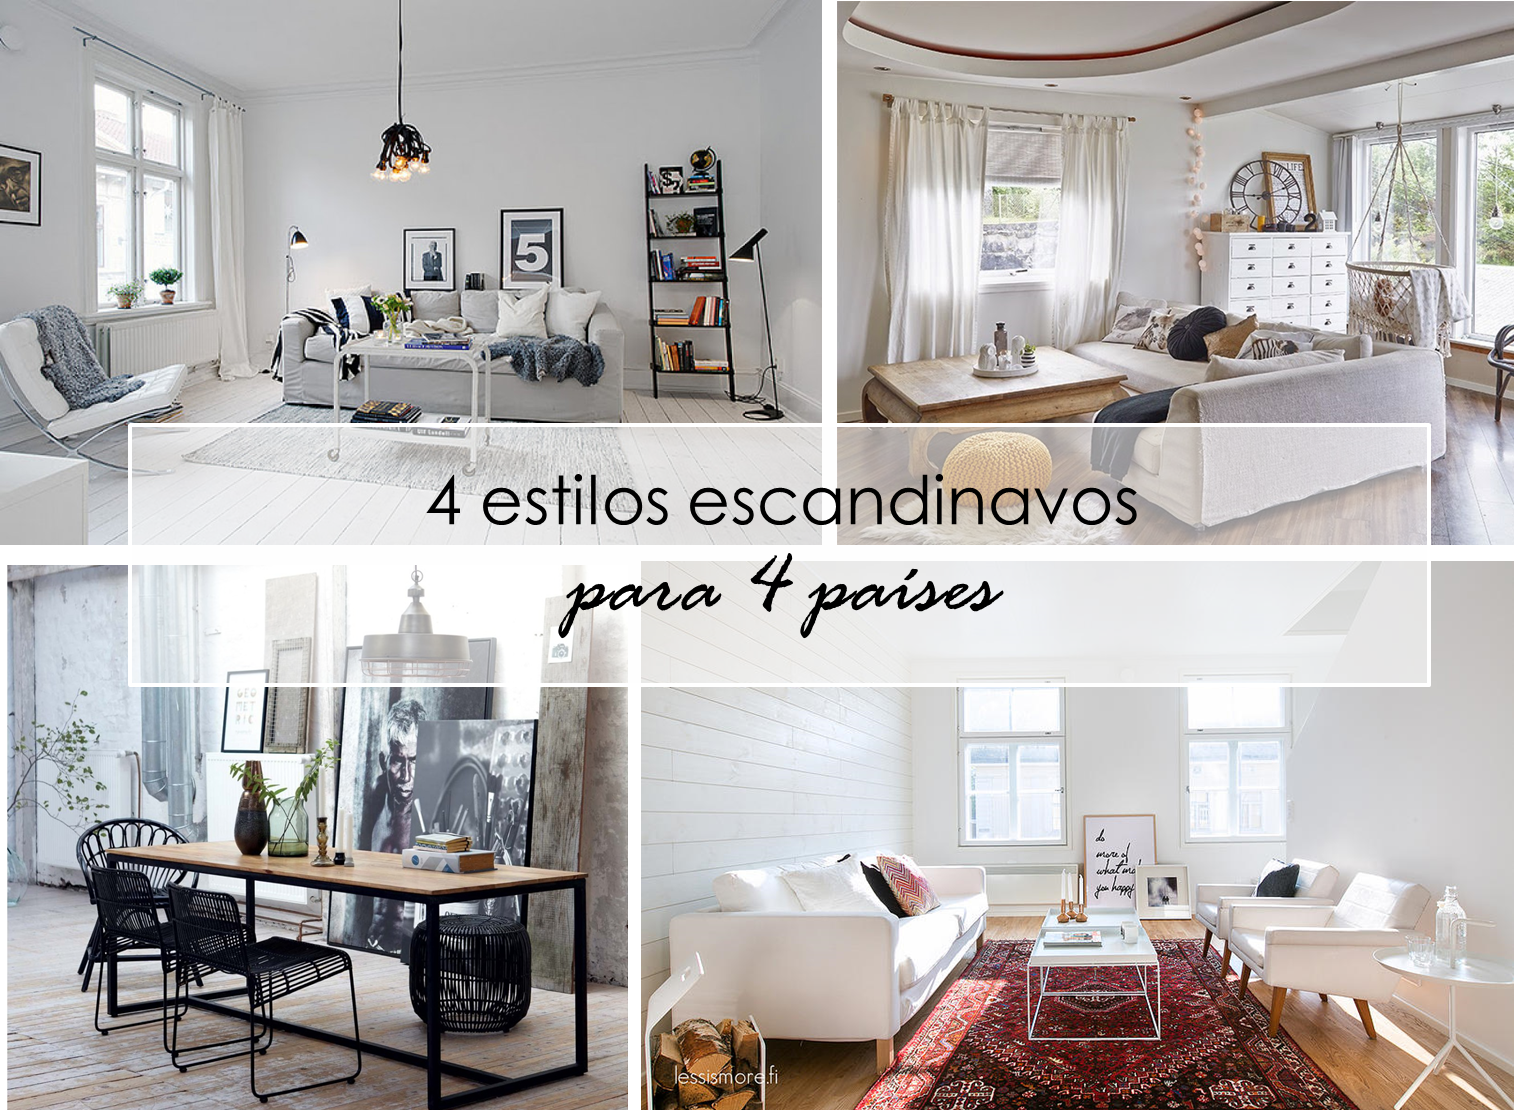 Decoraci n f cil diferencia del estilo escandinavo for Decoracion estilo nordico escandinavo